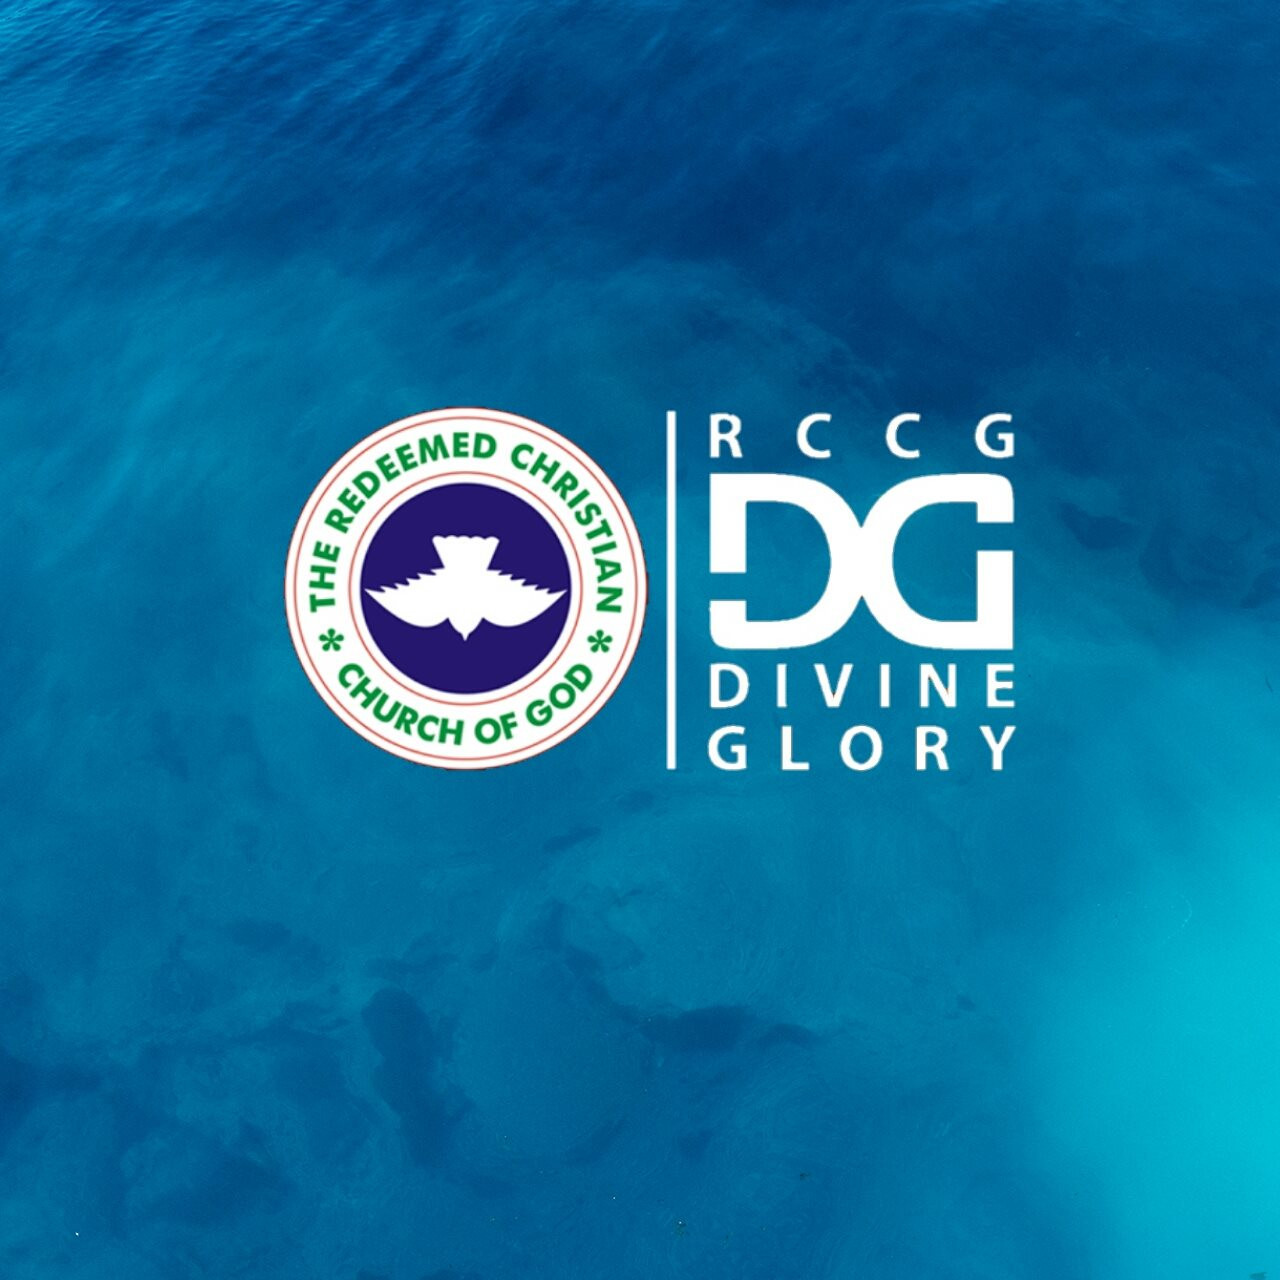 Prayer and Fasting | RCCG Philippines | Prayer Points